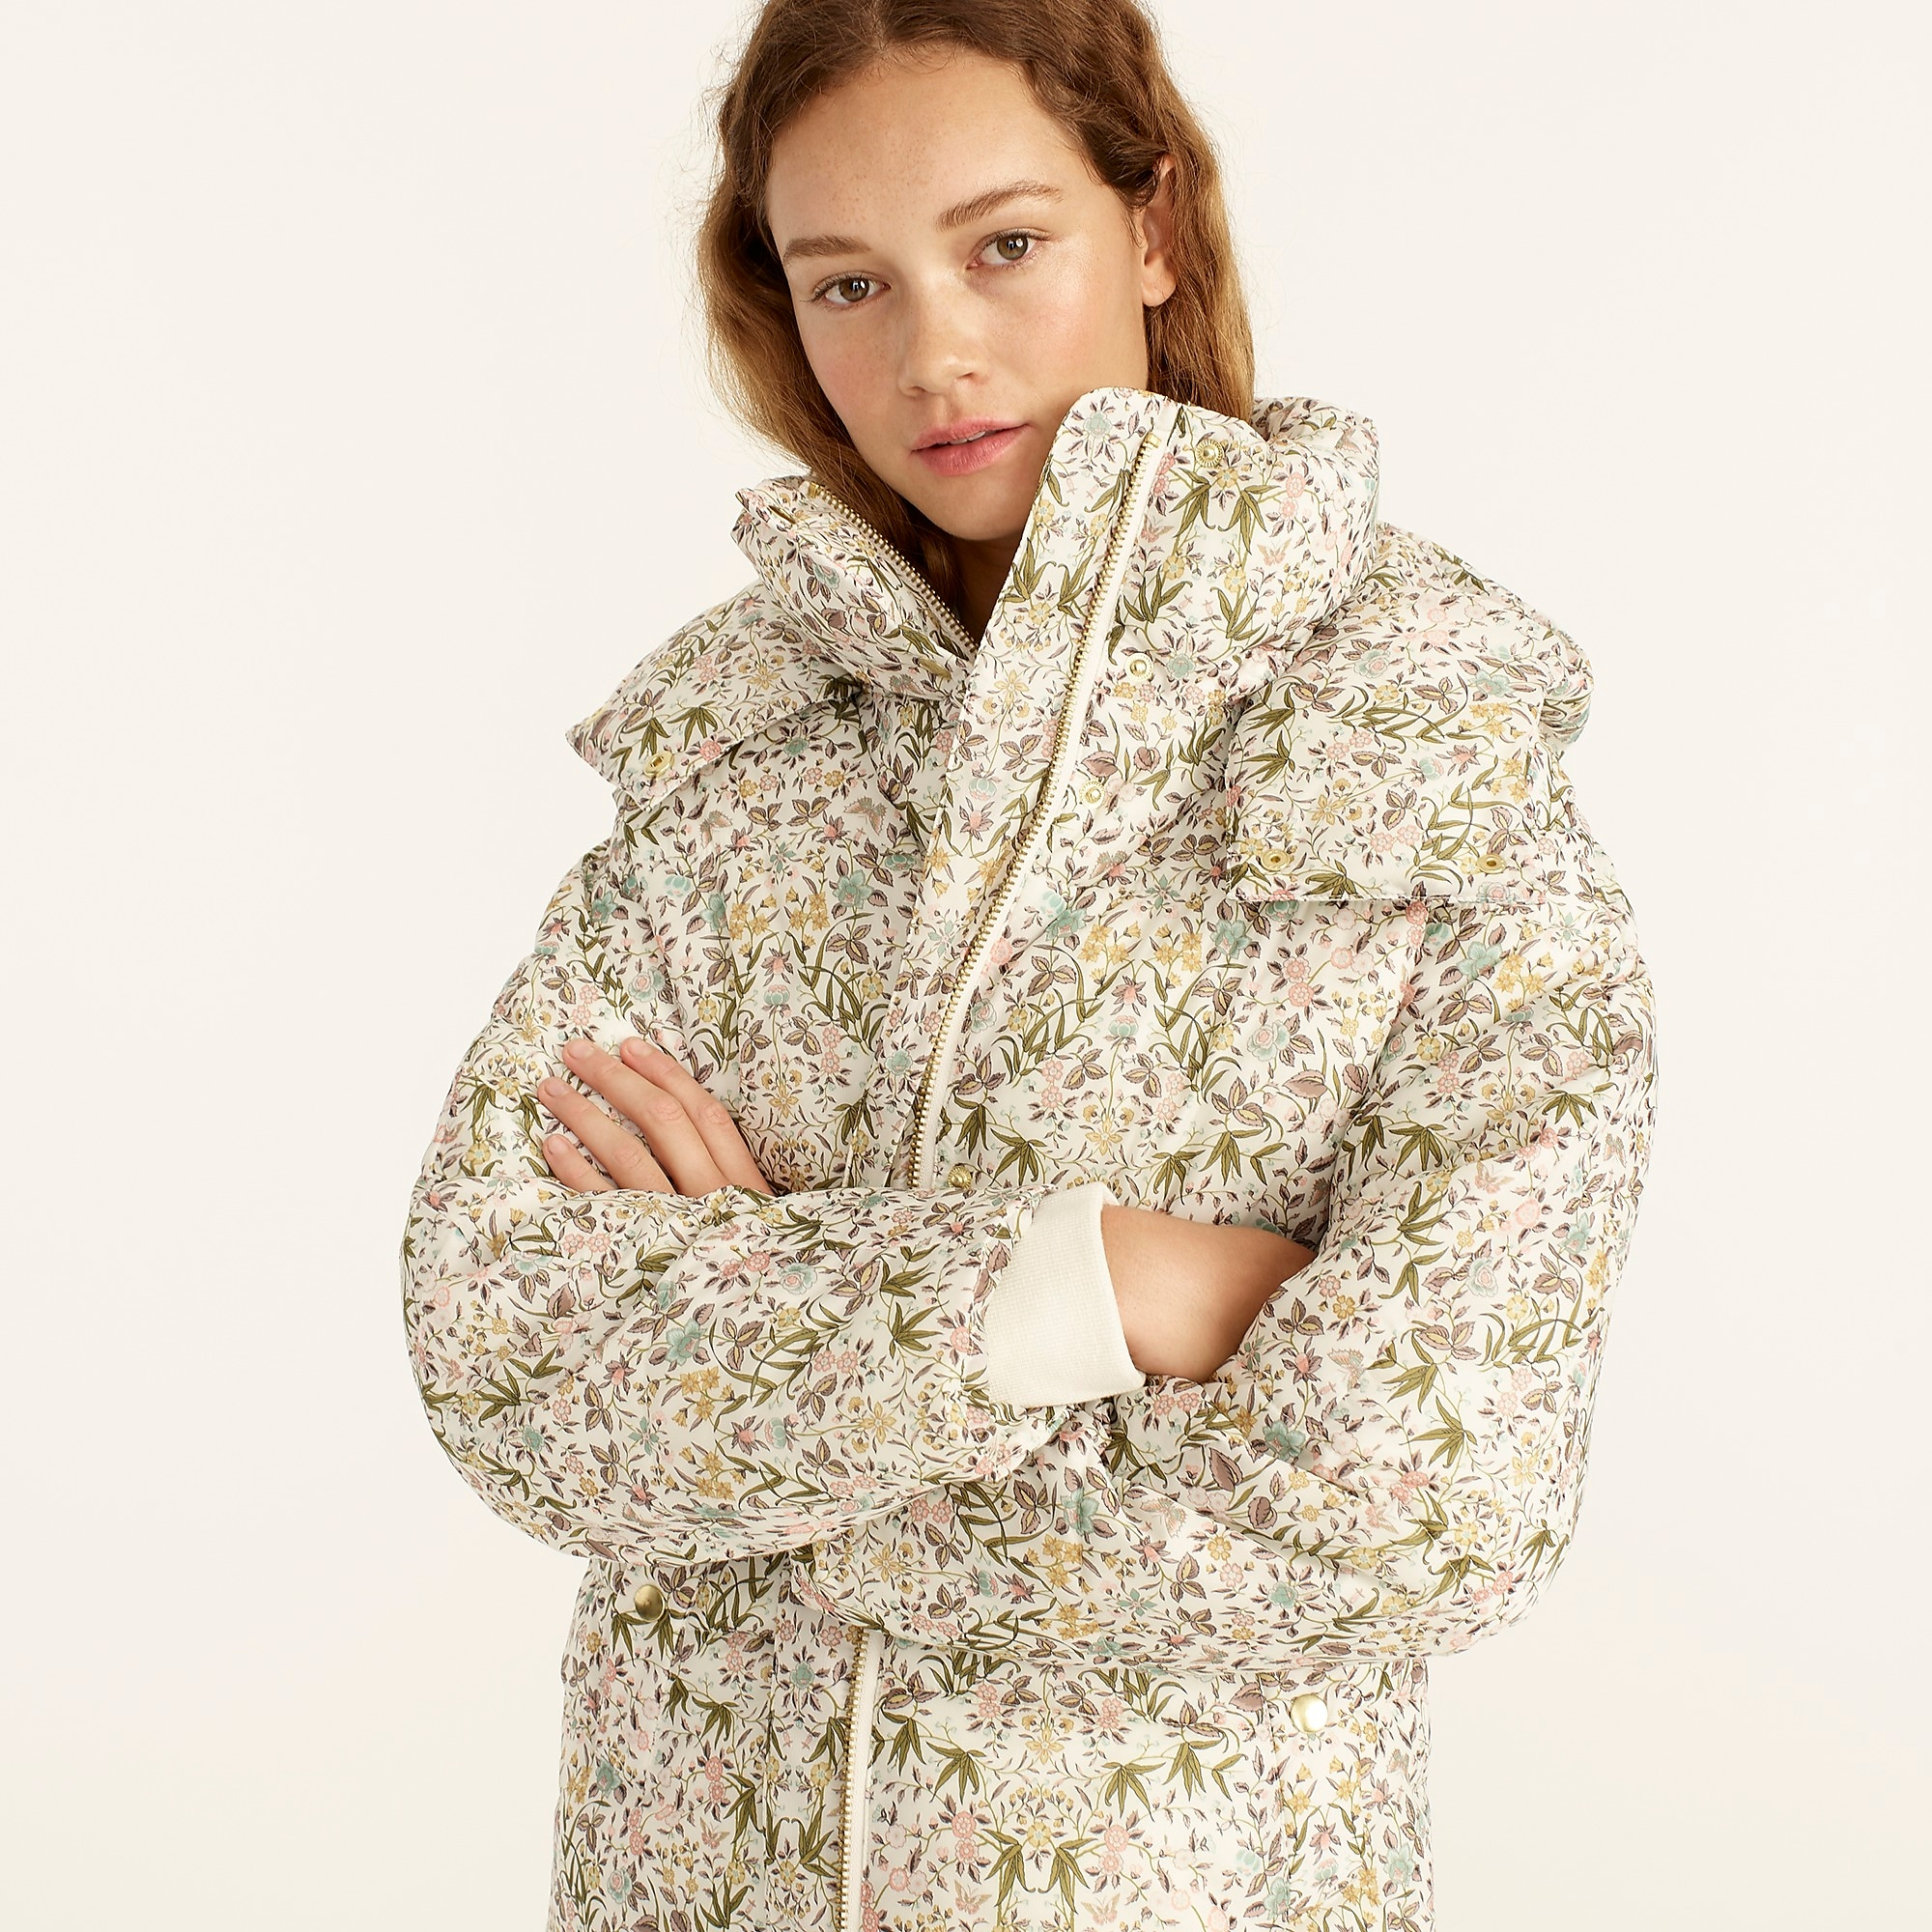 J.Crew Flurry Puffer Jacket with PrimaLoft in Liberty Tapestry Floral one of the Favorite Fall Sweaters